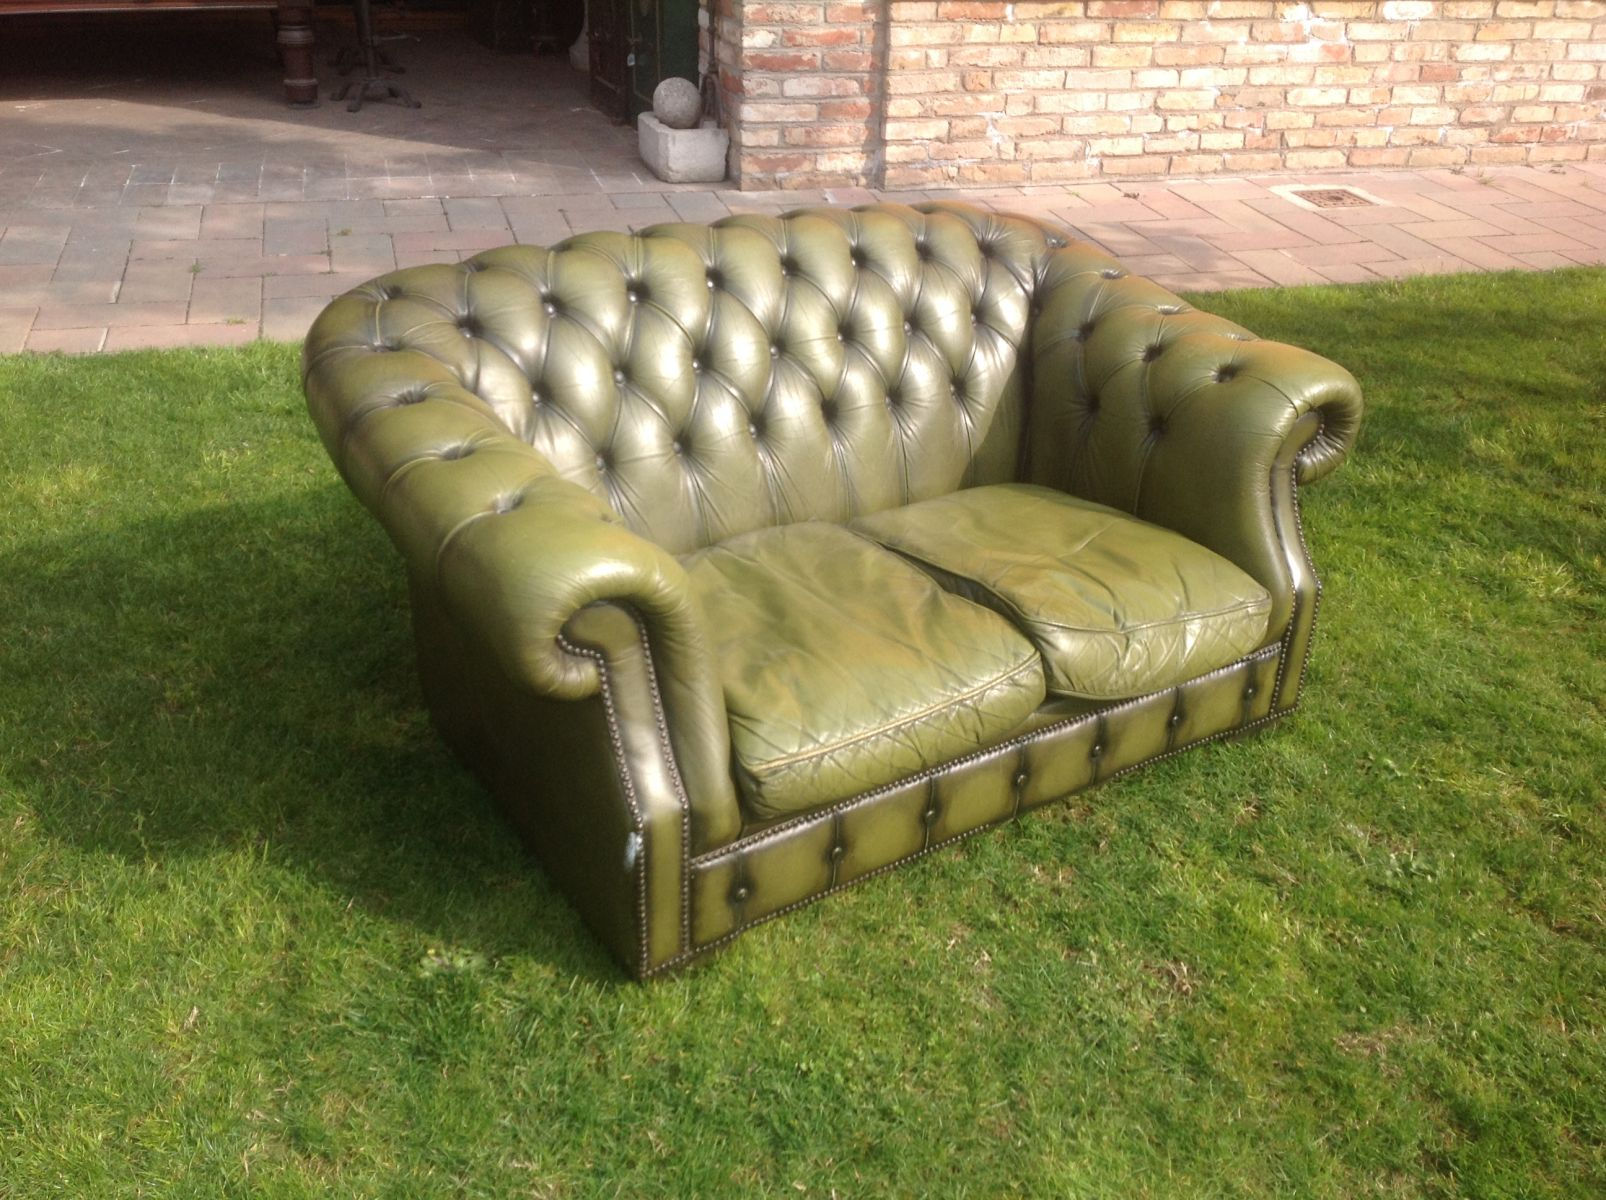 Salotto Chesterfield originale inglese vintage in vera pelle color verde img_0500.jpg